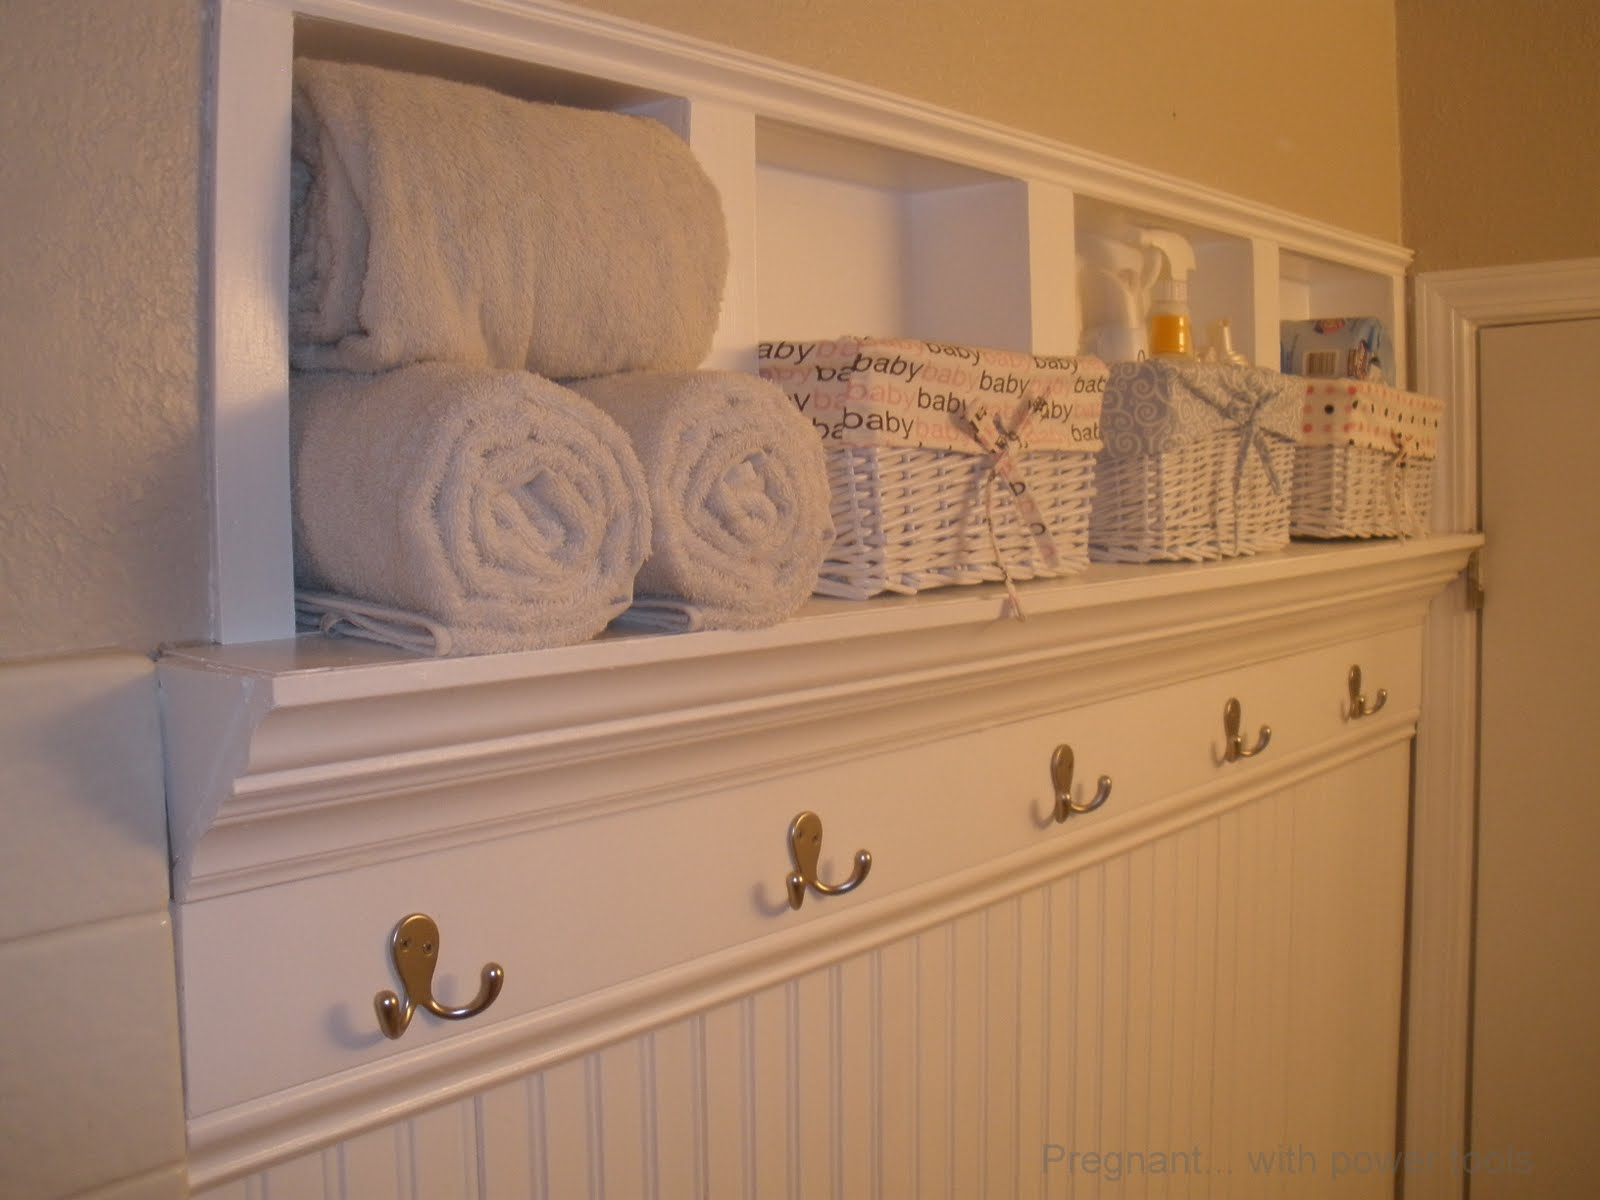 Built in bathroom wall storage - Creating Beautiful Storage Space Within Bathroom Walls